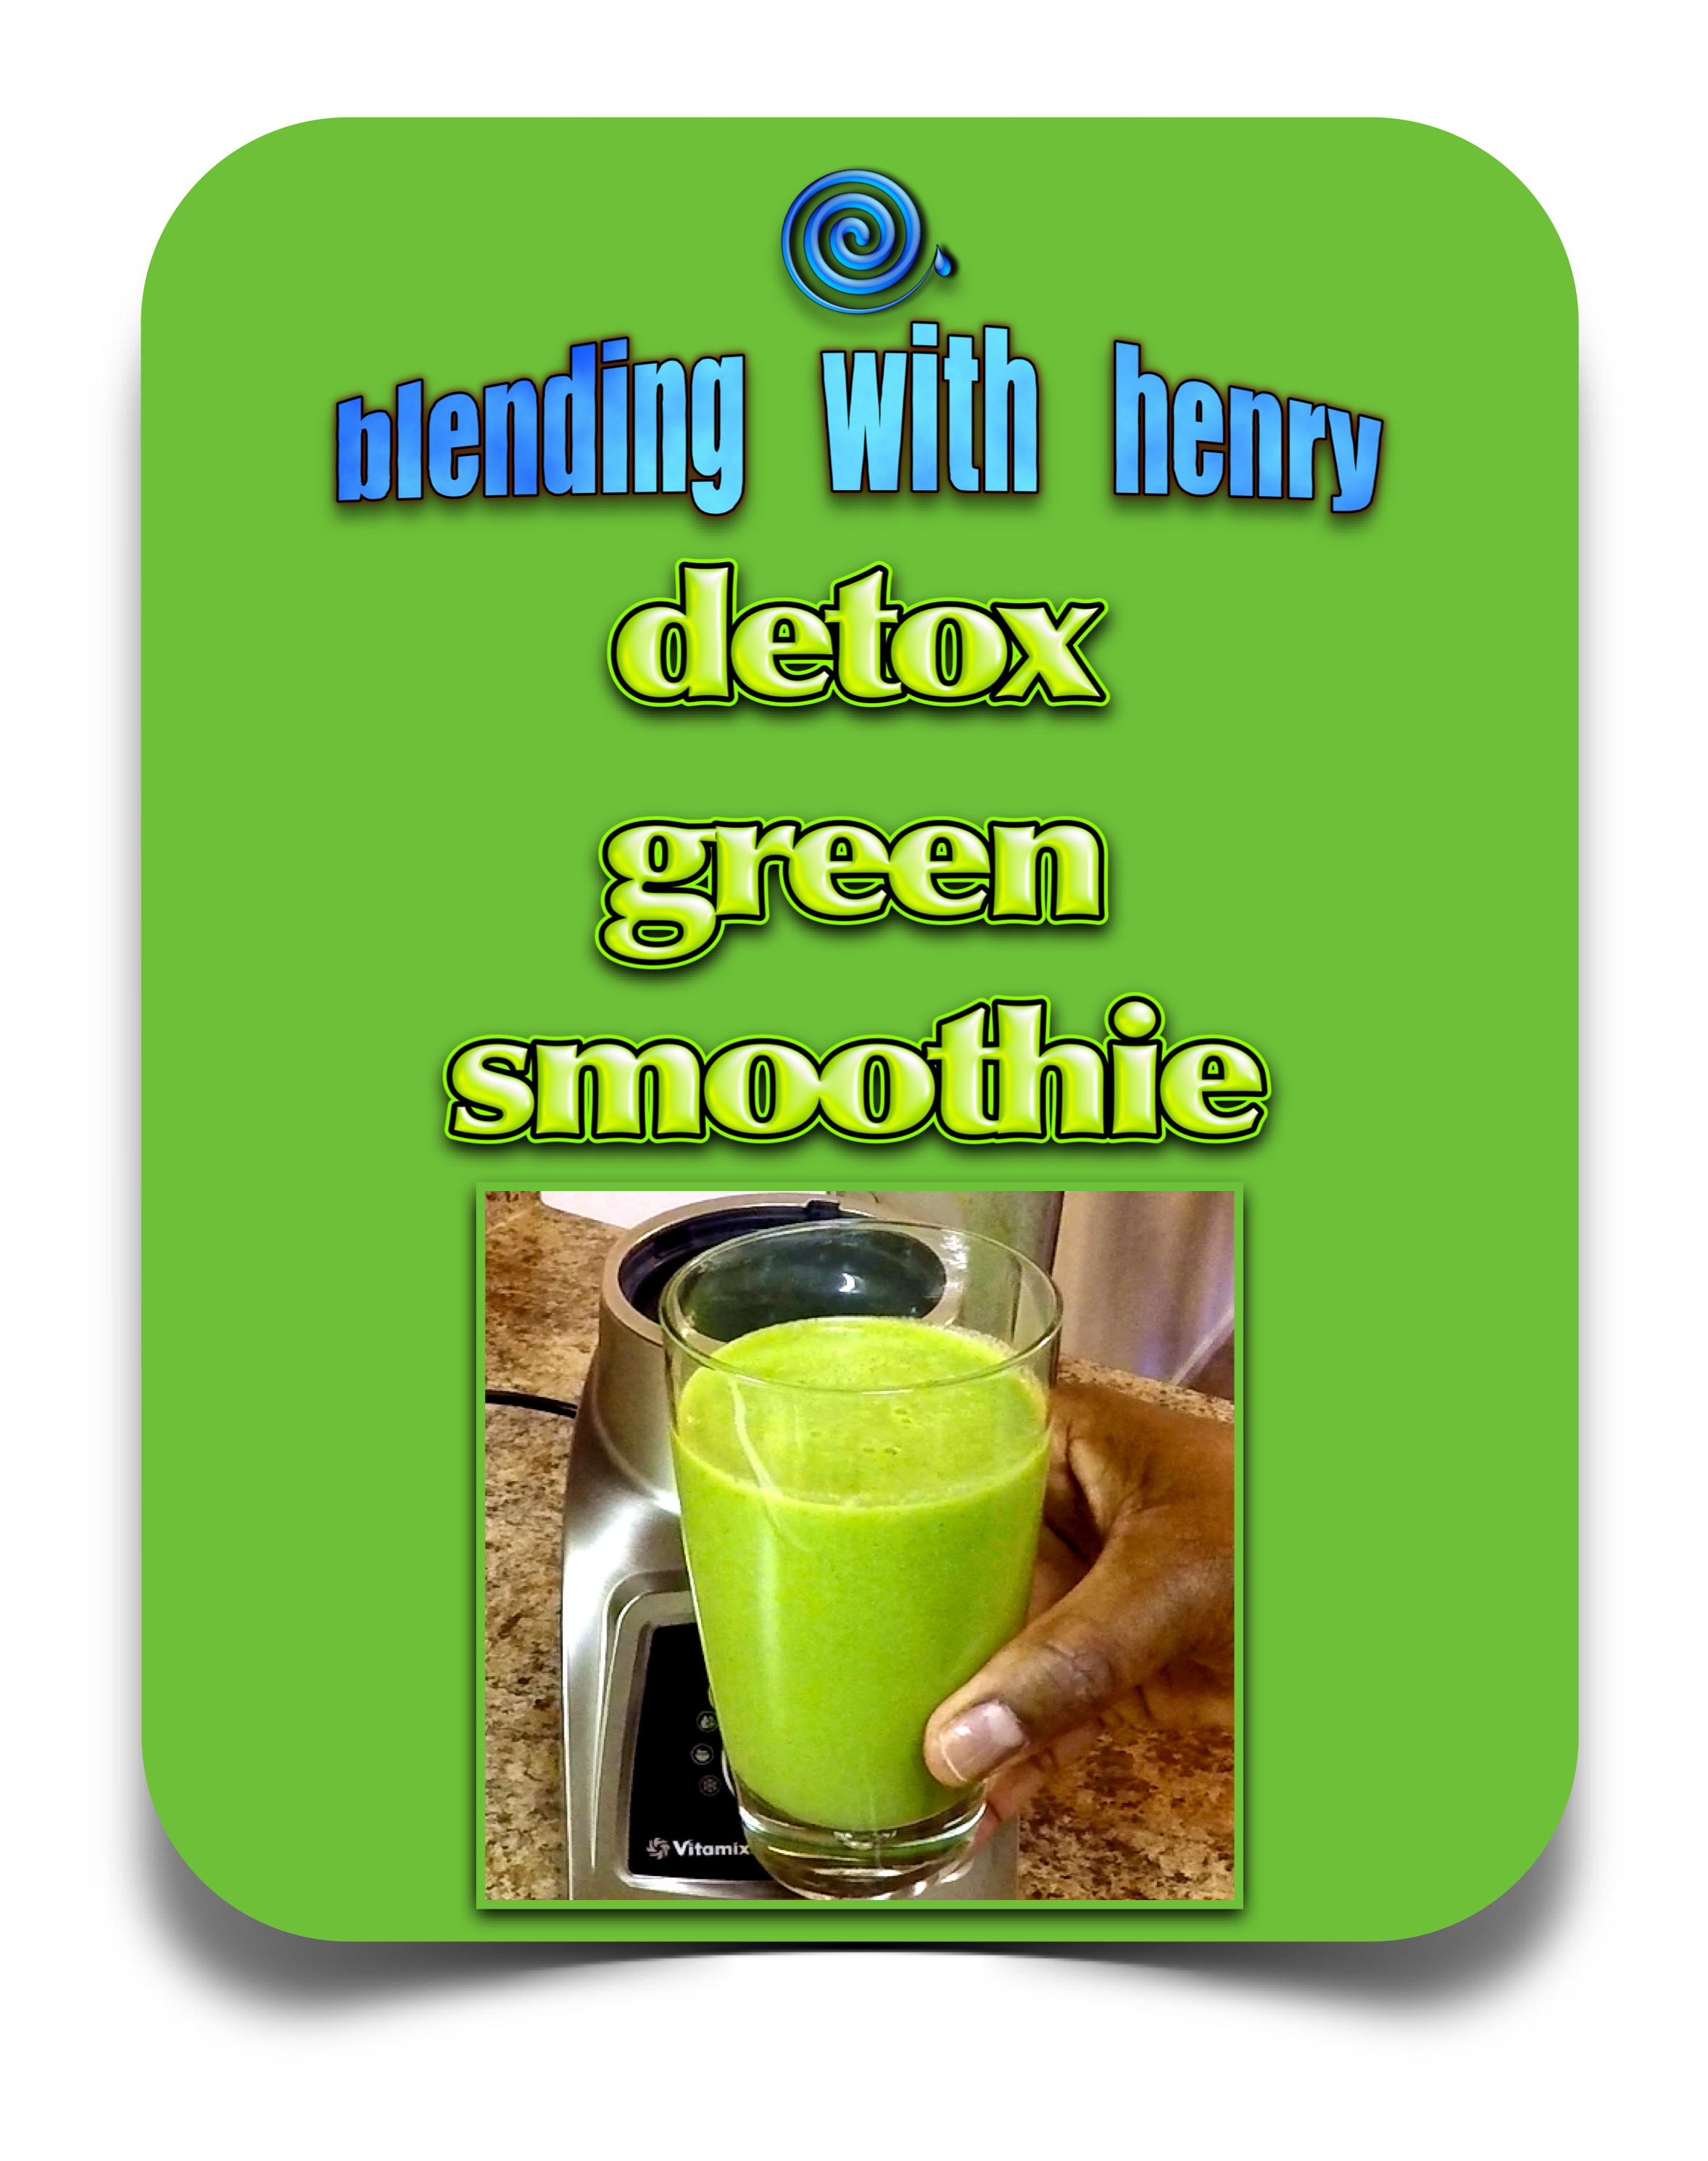 GREEN DETOX SMOOTHIE.png